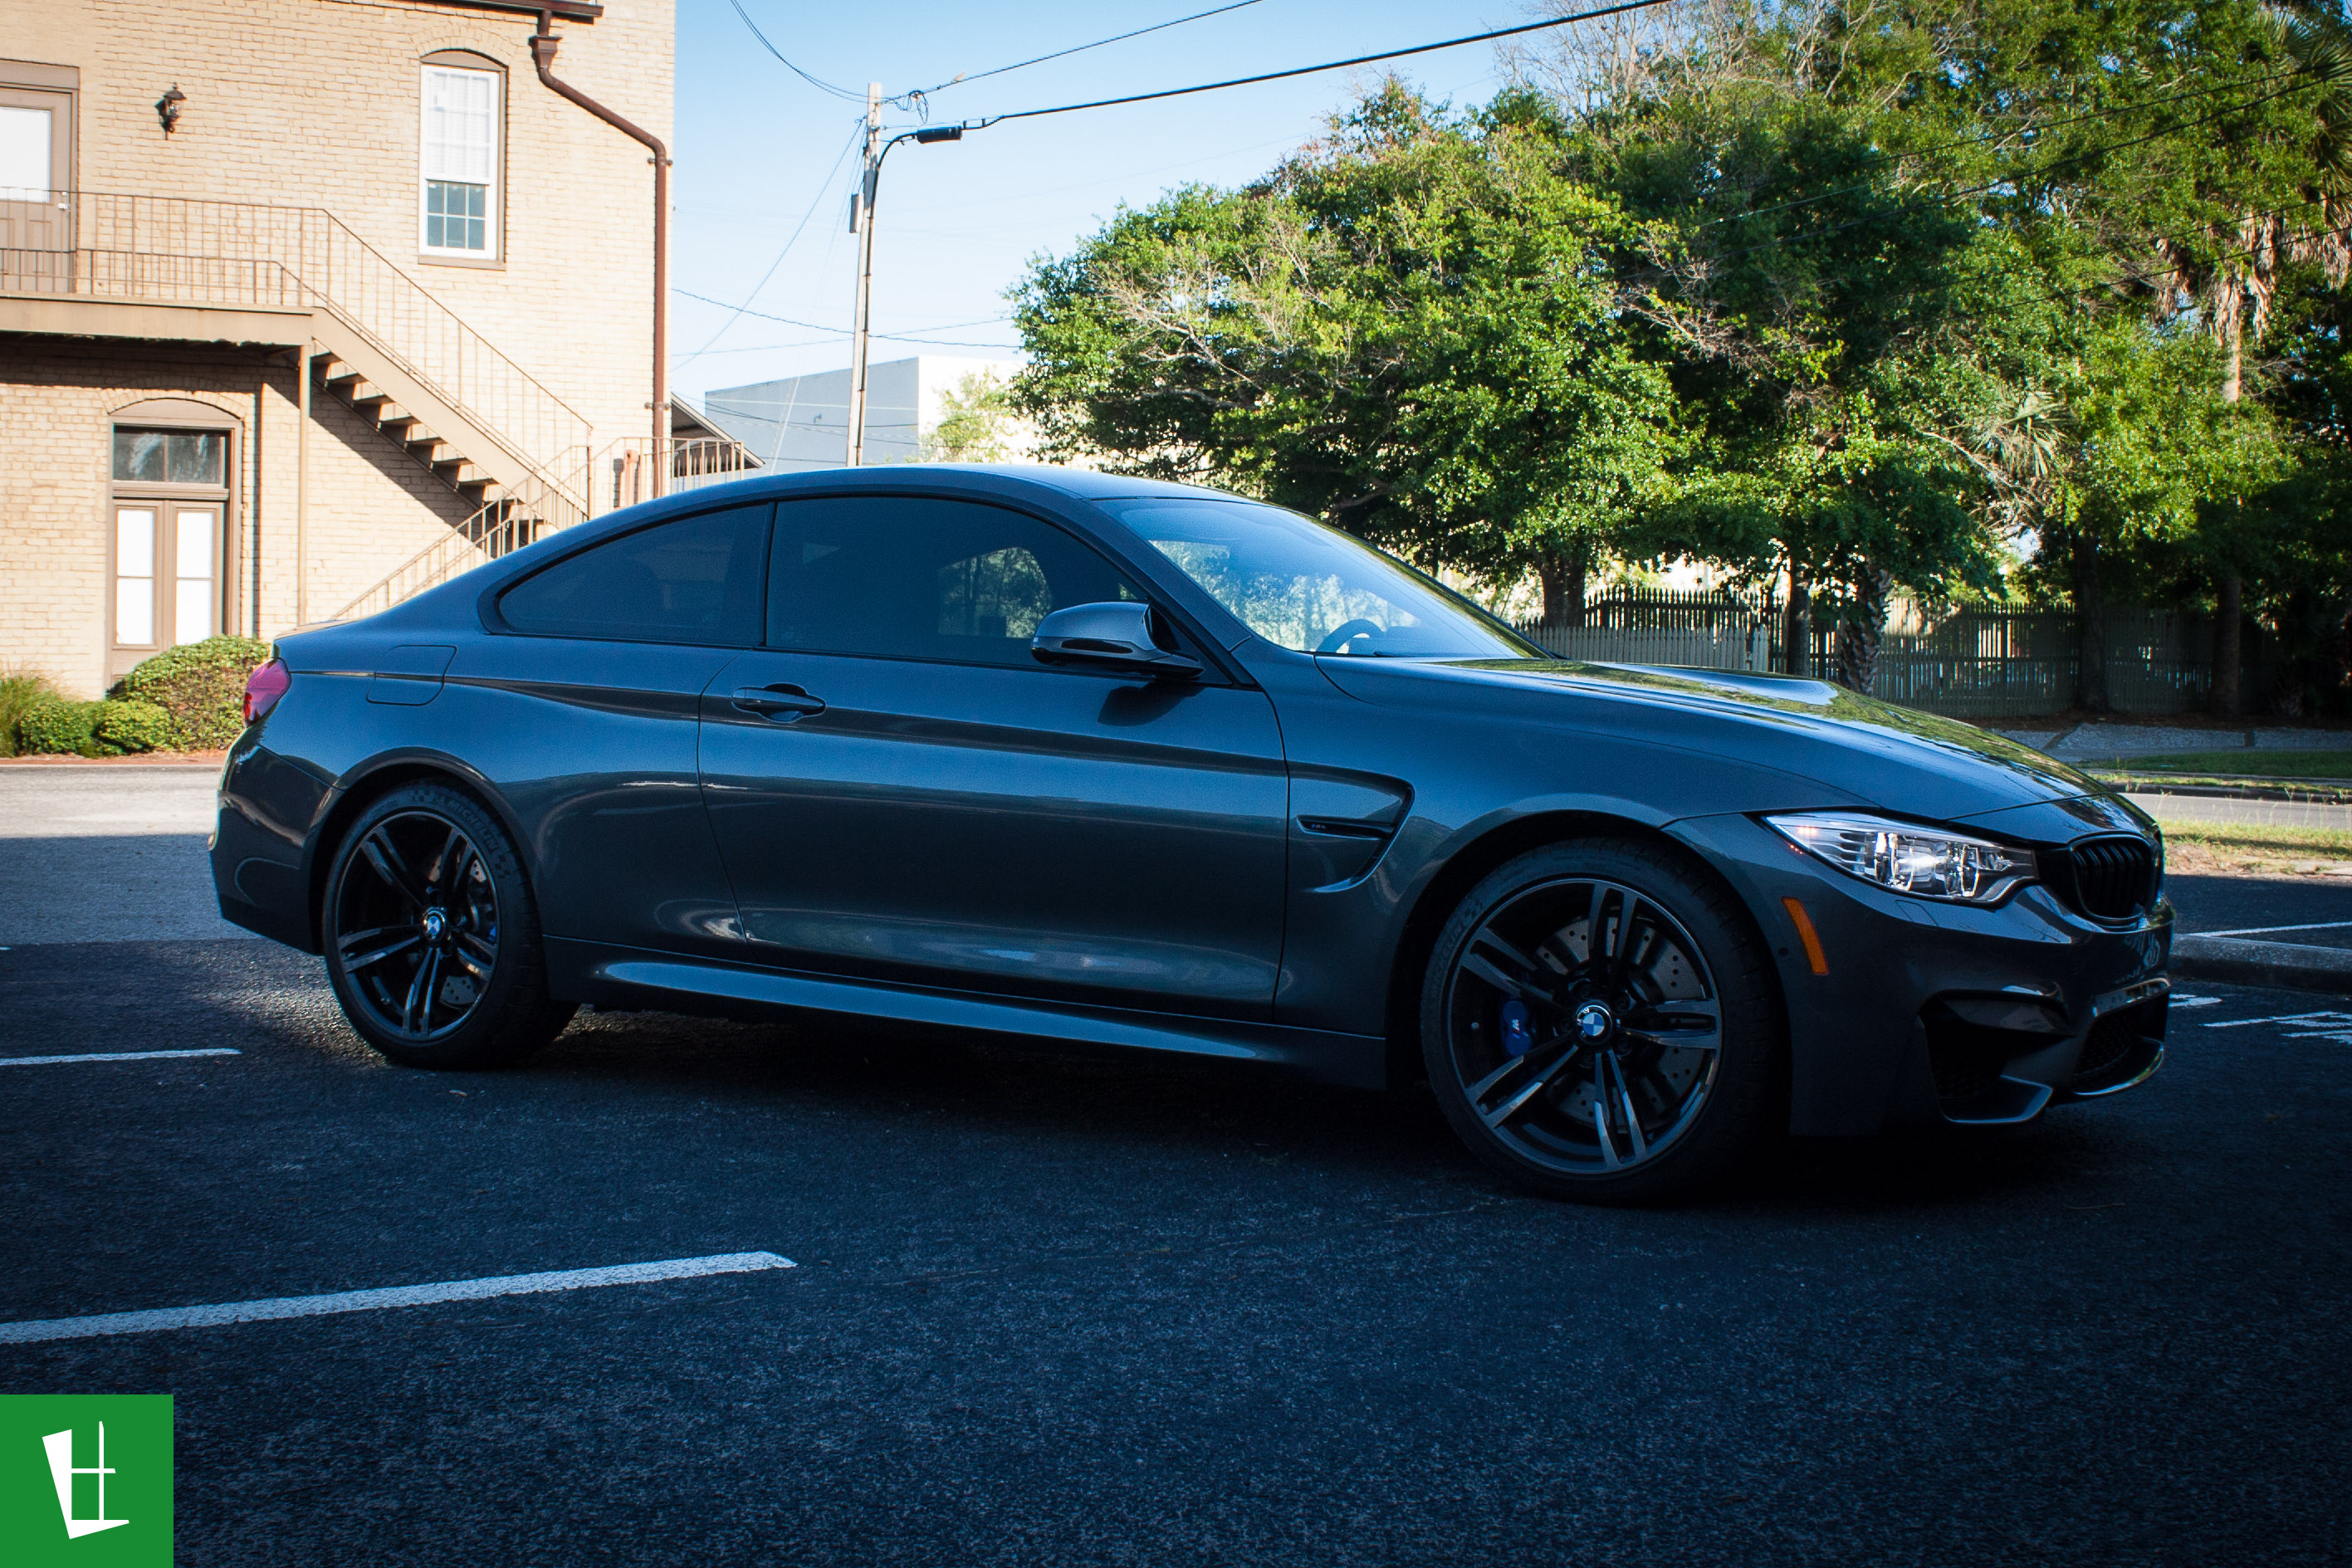 2012 Bmw 328i For Sale >> 2015 BMW M4 Window Tinting